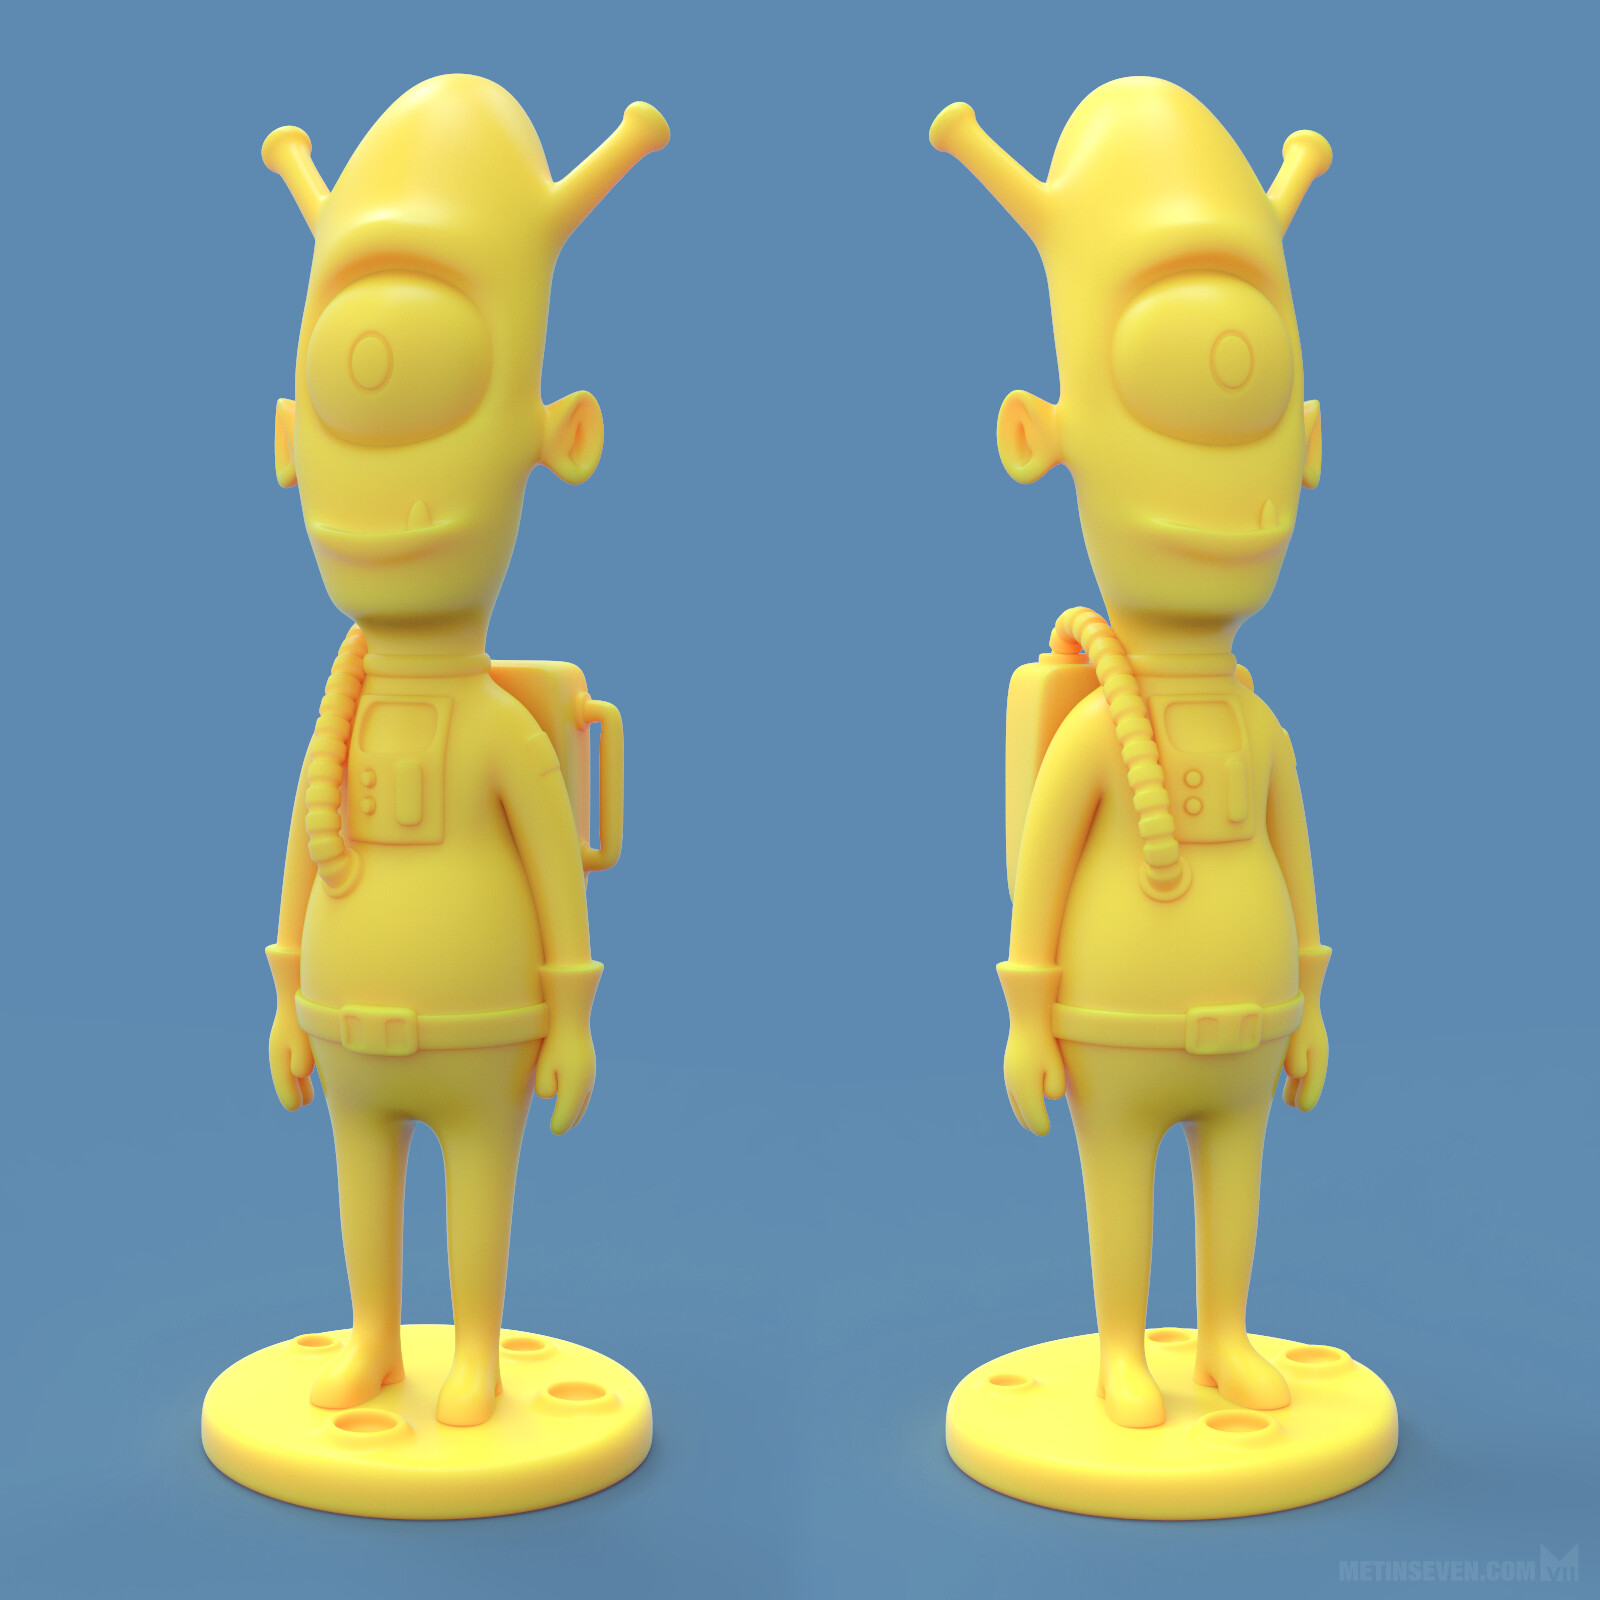 Friendly alien 3D-printed figure design | Concept: Patrick Maynard